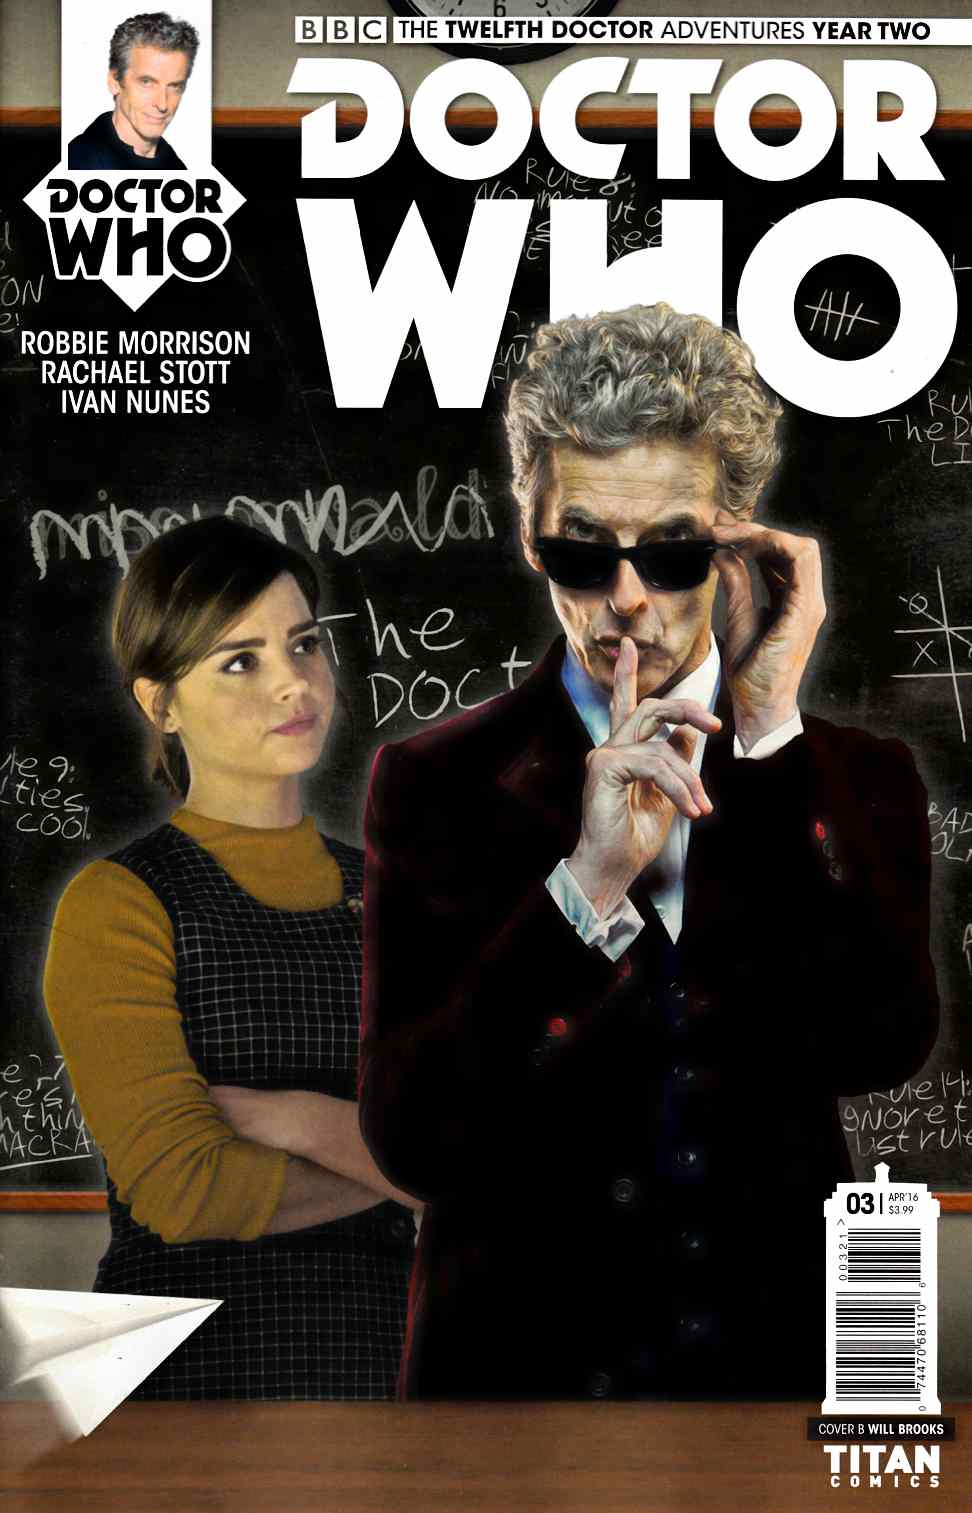 Doctor Who 12th Doctor Year Two #3 Cover B- Photo [Titan Comic]